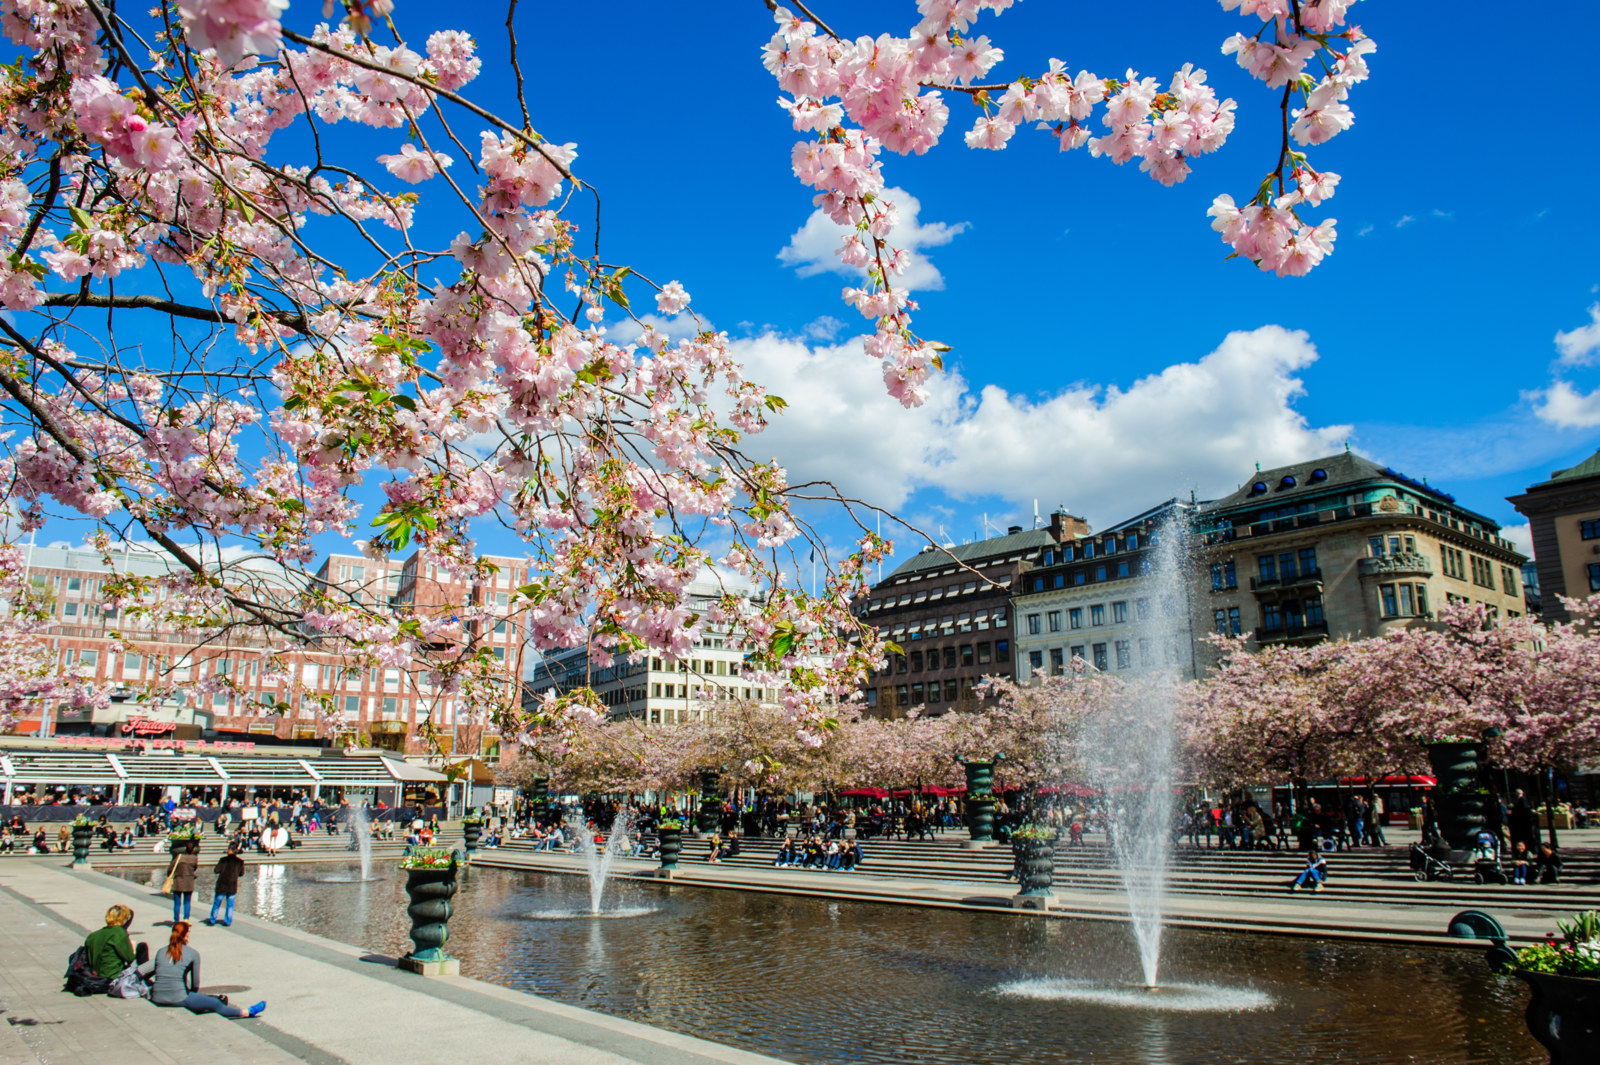 Cherry bloom in Stockholm